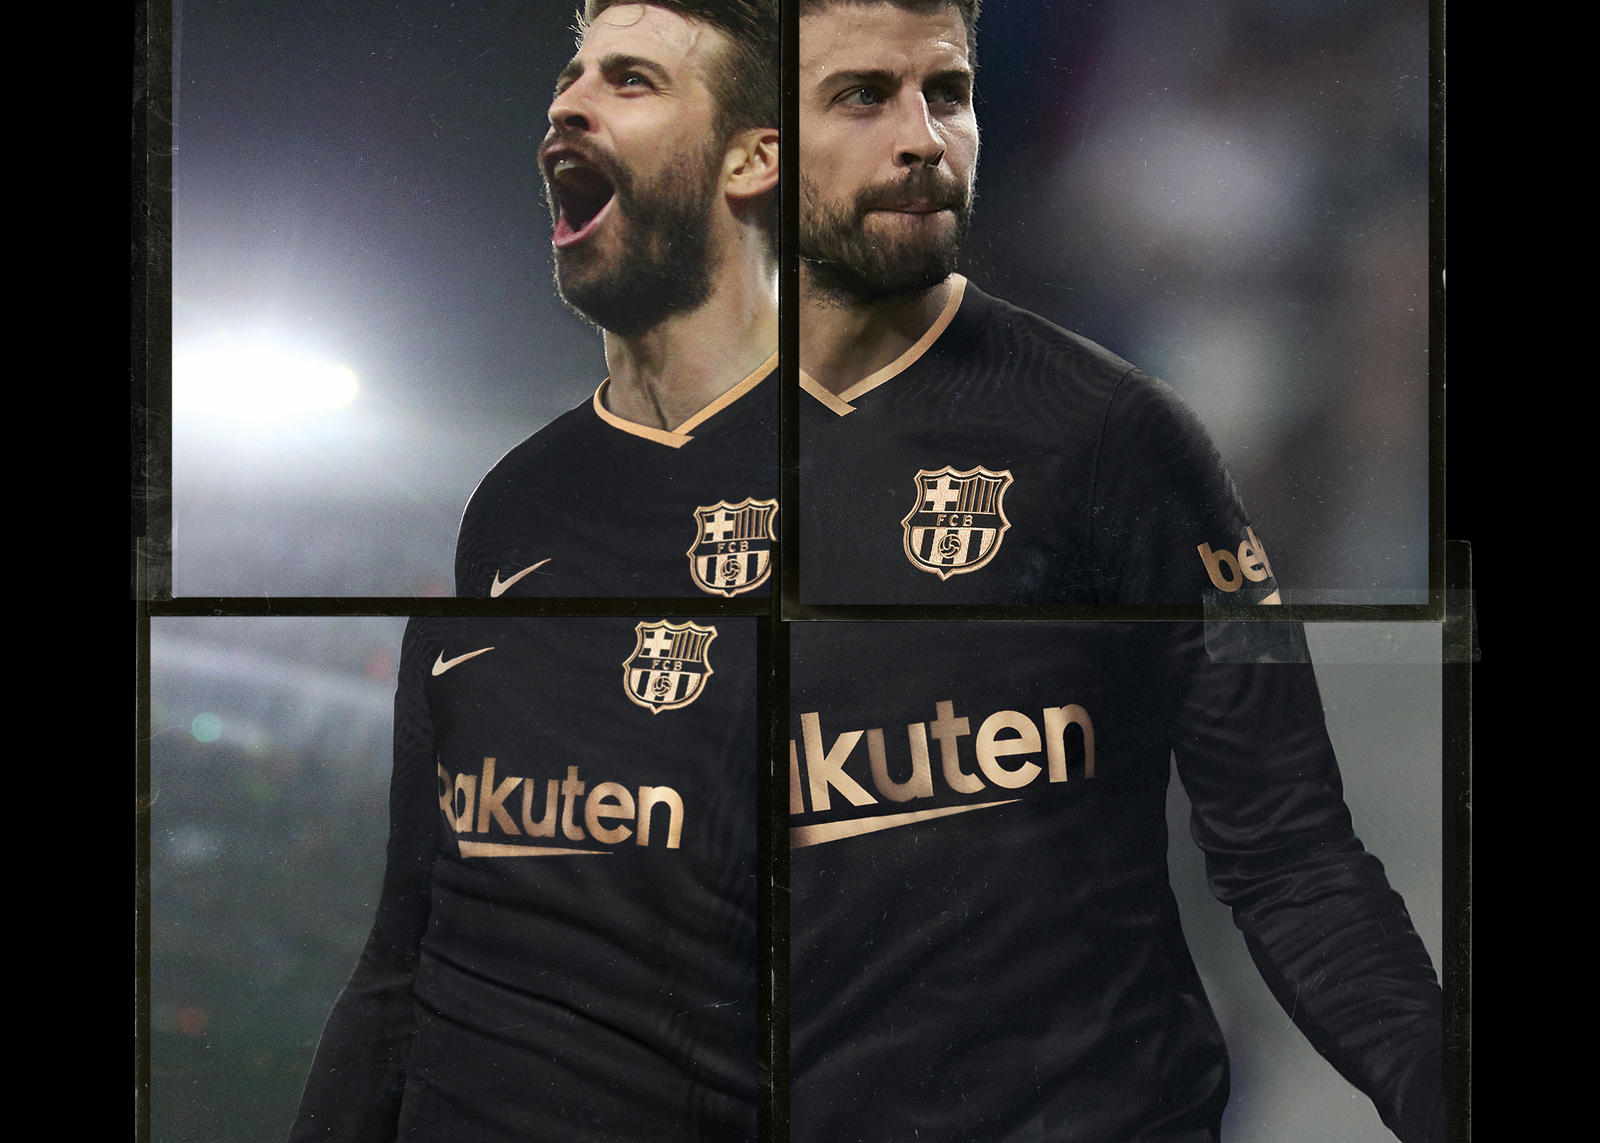 fc barcelona 2020 21 away kit nike news fc barcelona 2020 21 away kit nike news